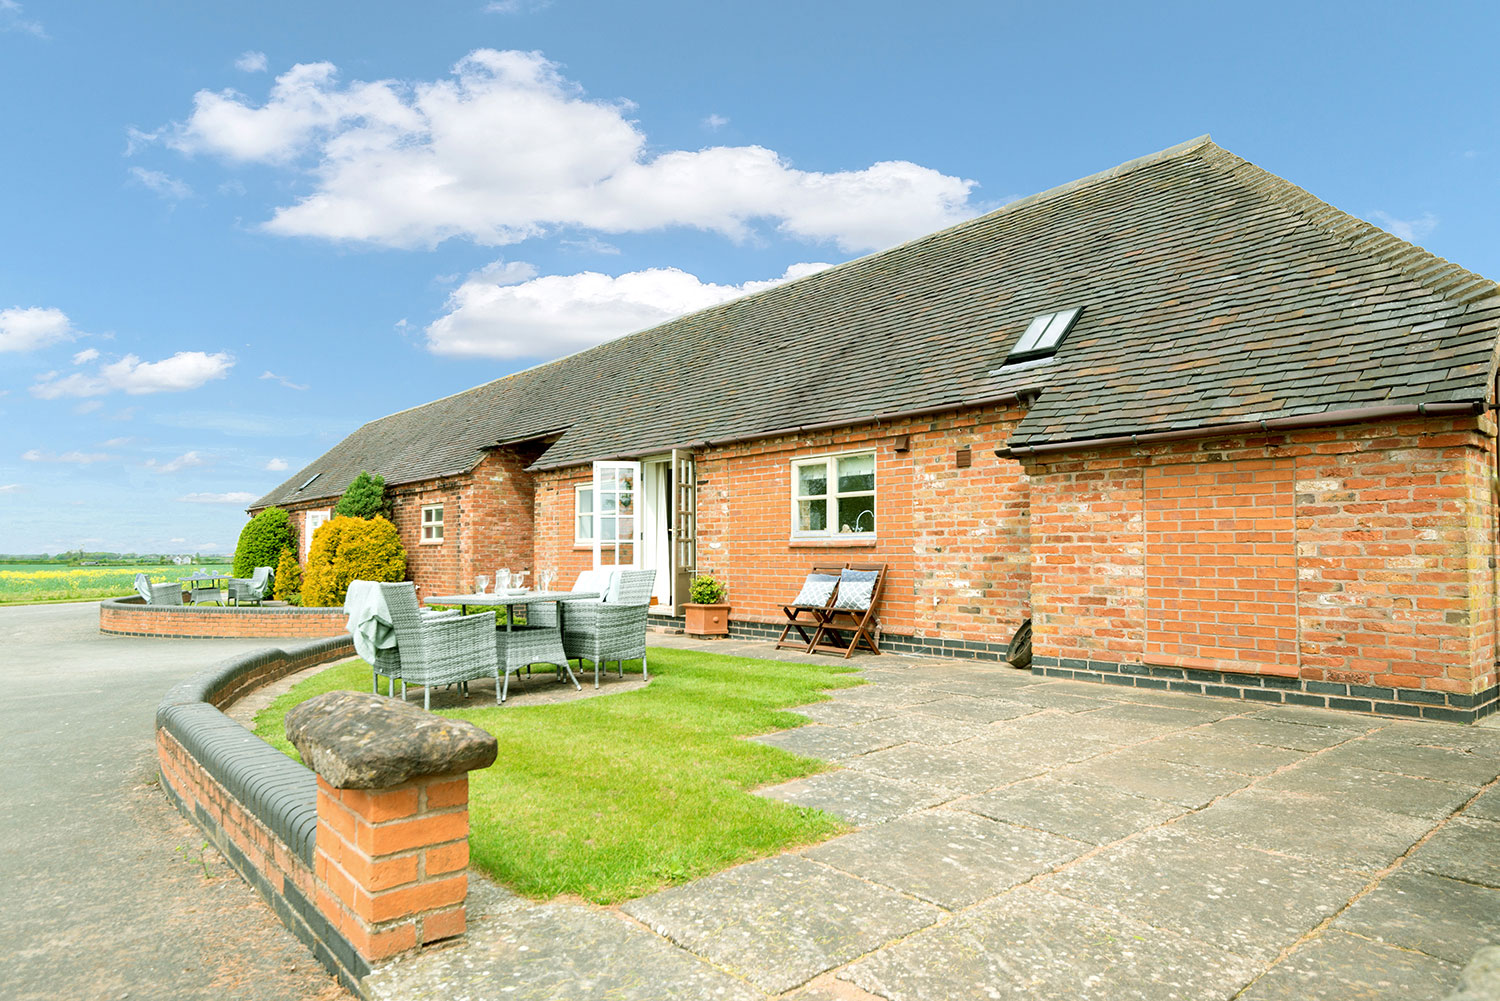 Holiday cottage with private outdoor space   Upper Rectory Farm Cottages